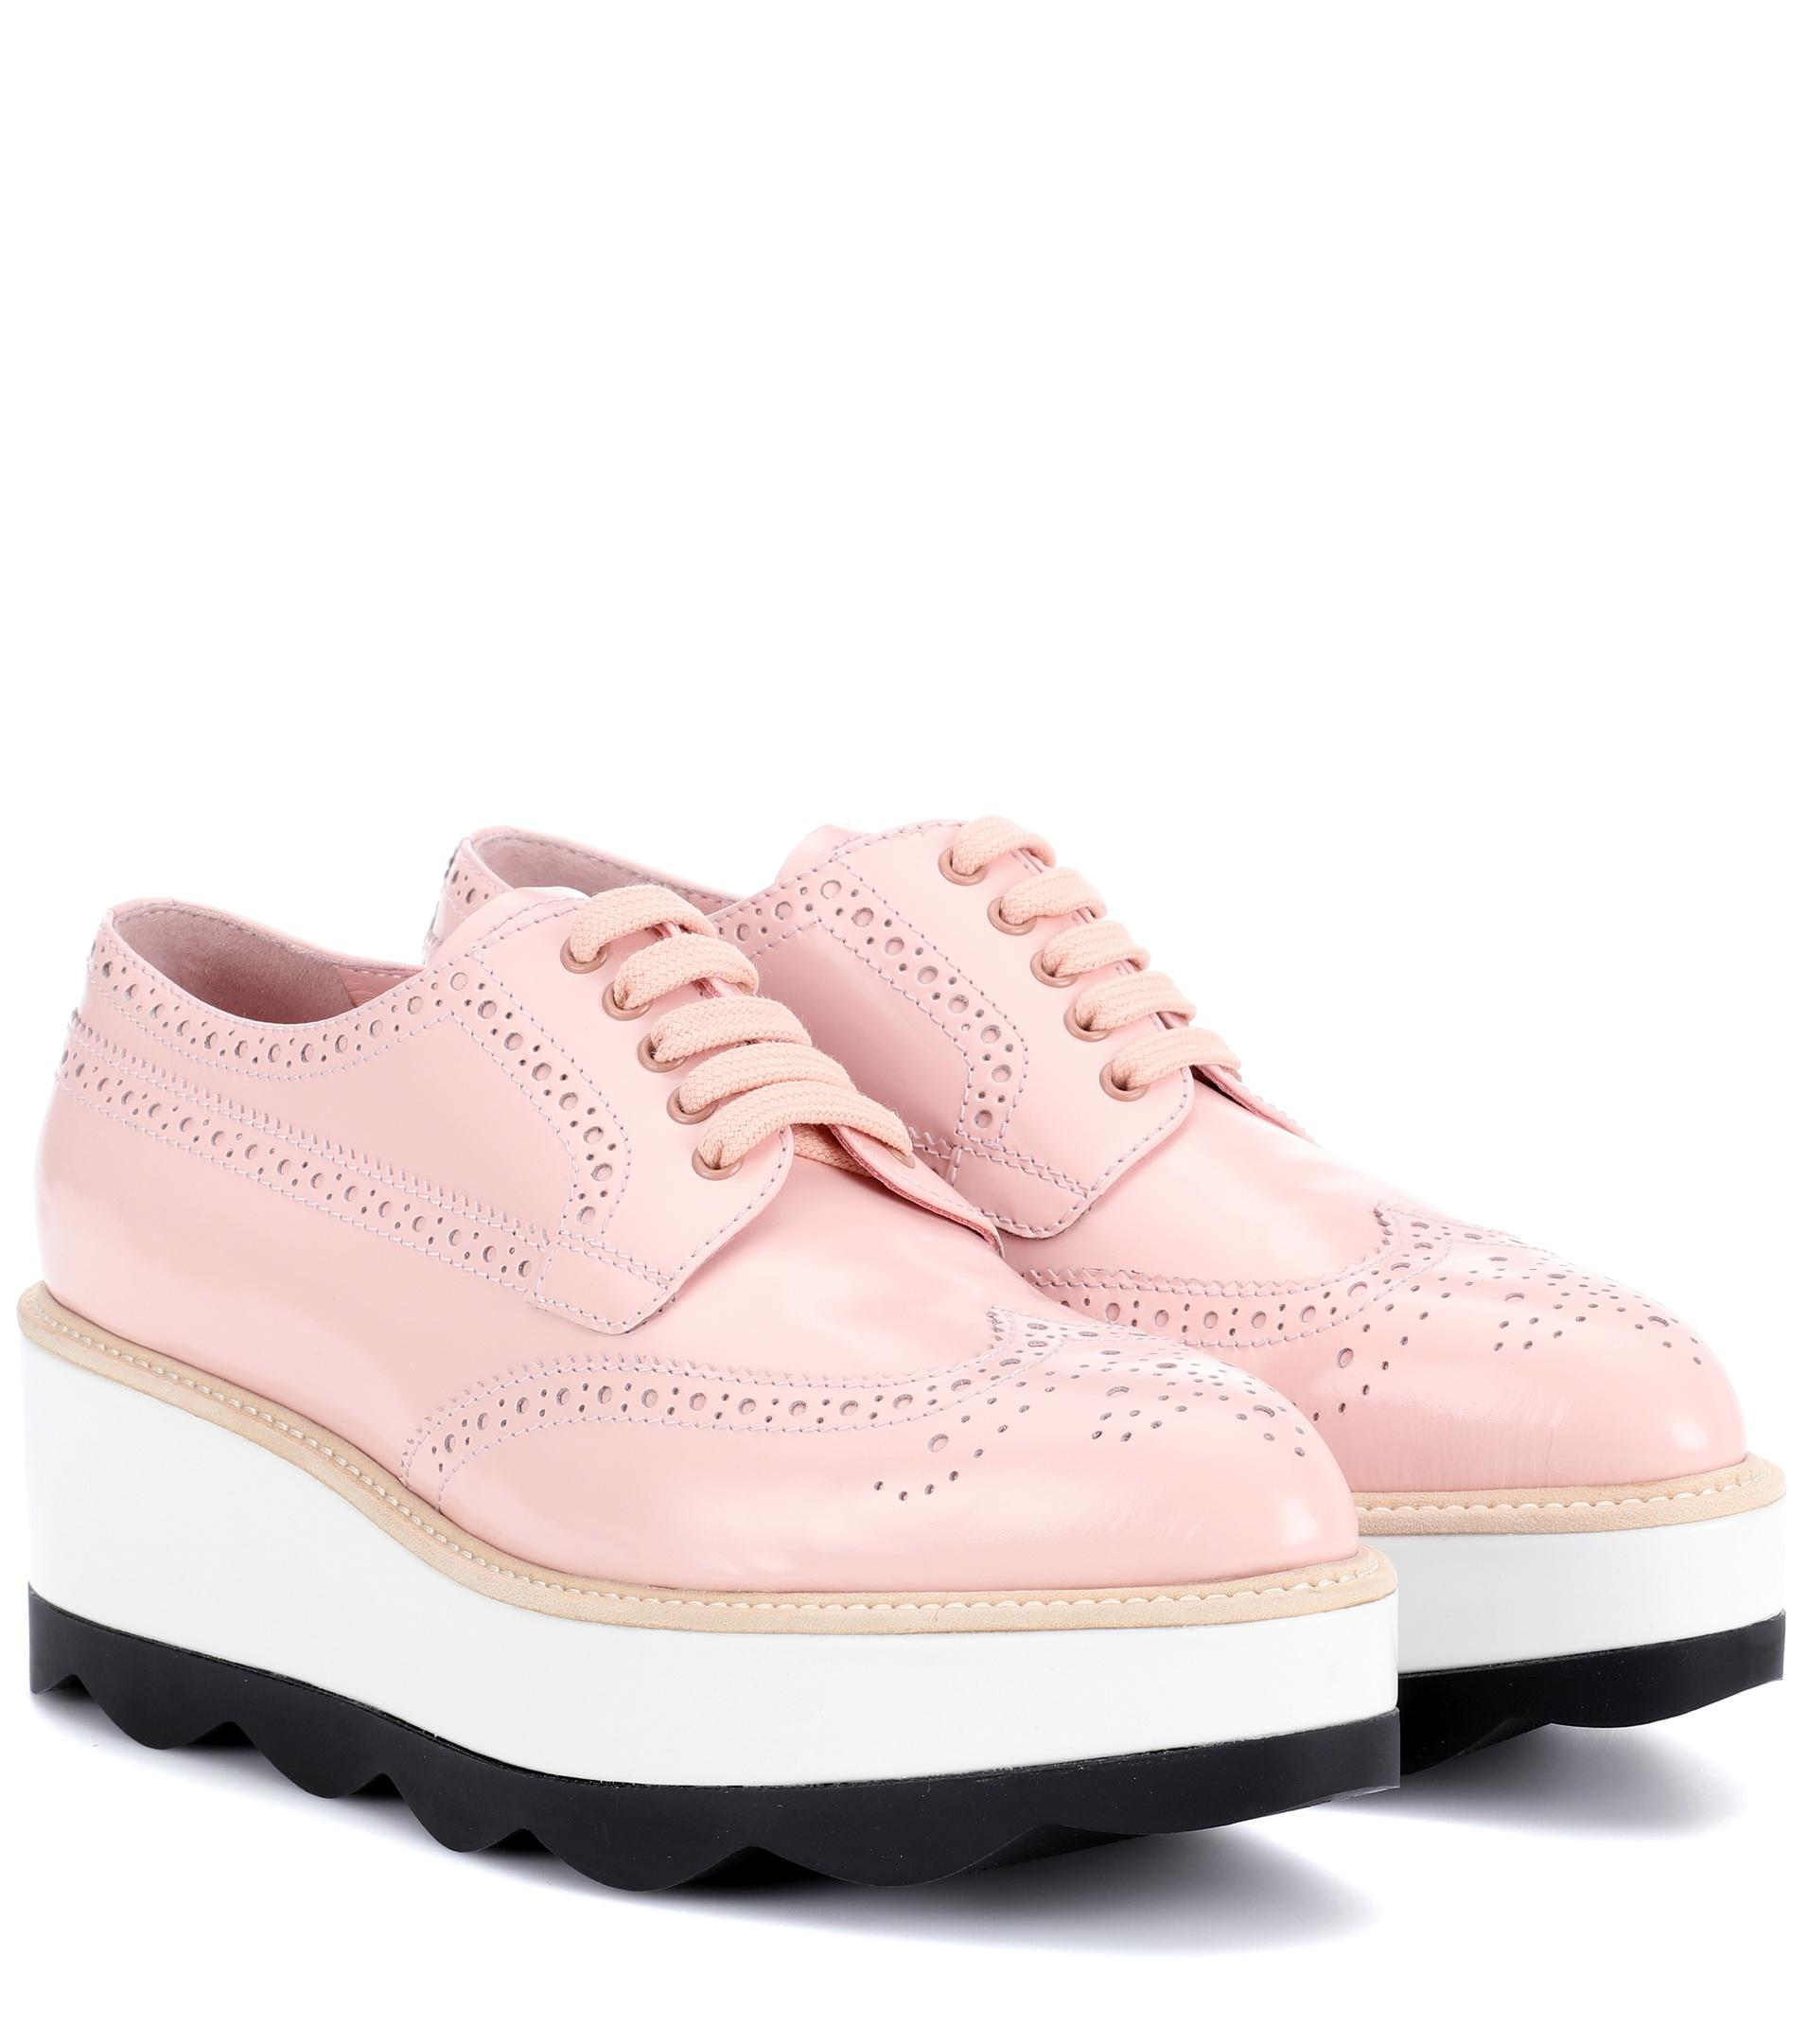 1cd122f632b1 Prada Leather Platform Oxford Shoes in Pink - Lyst